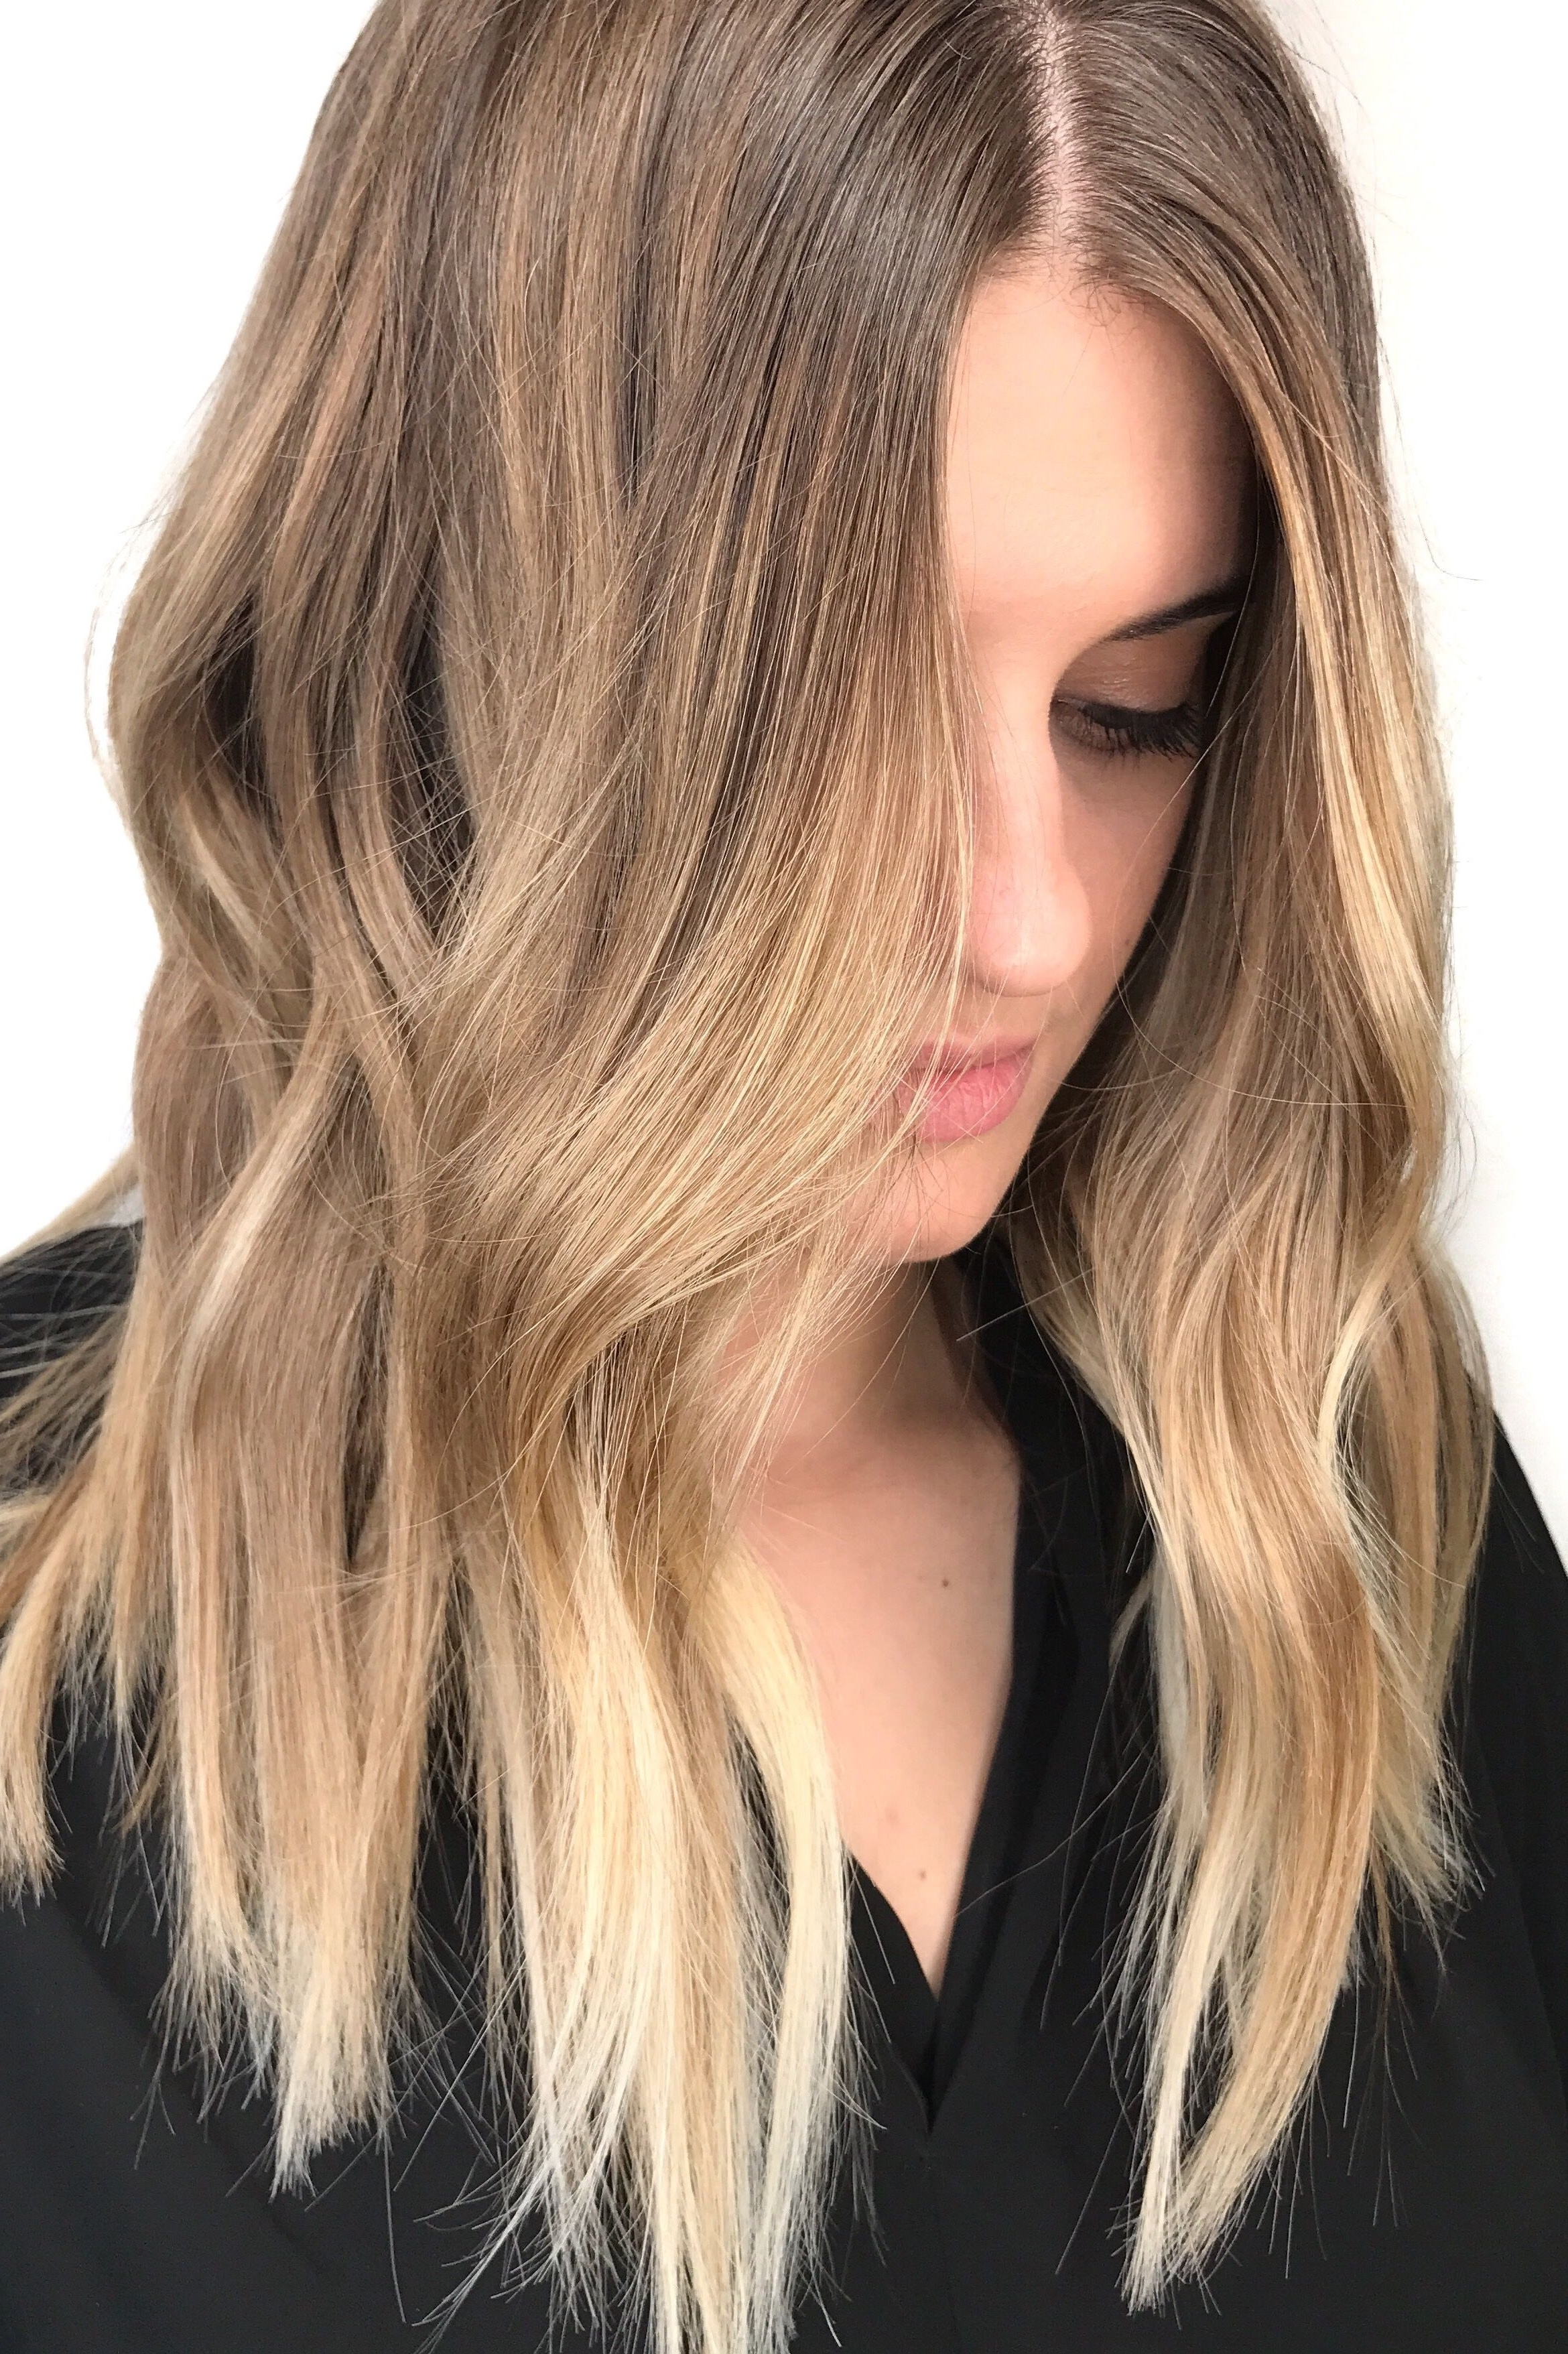 Most Popular Sunkissed Long Locks Blonde Hairstyles With Regard To Blonde Balayage ; Natural Blonde Highlights ; Sun Kissed Hair Color (View 11 of 20)